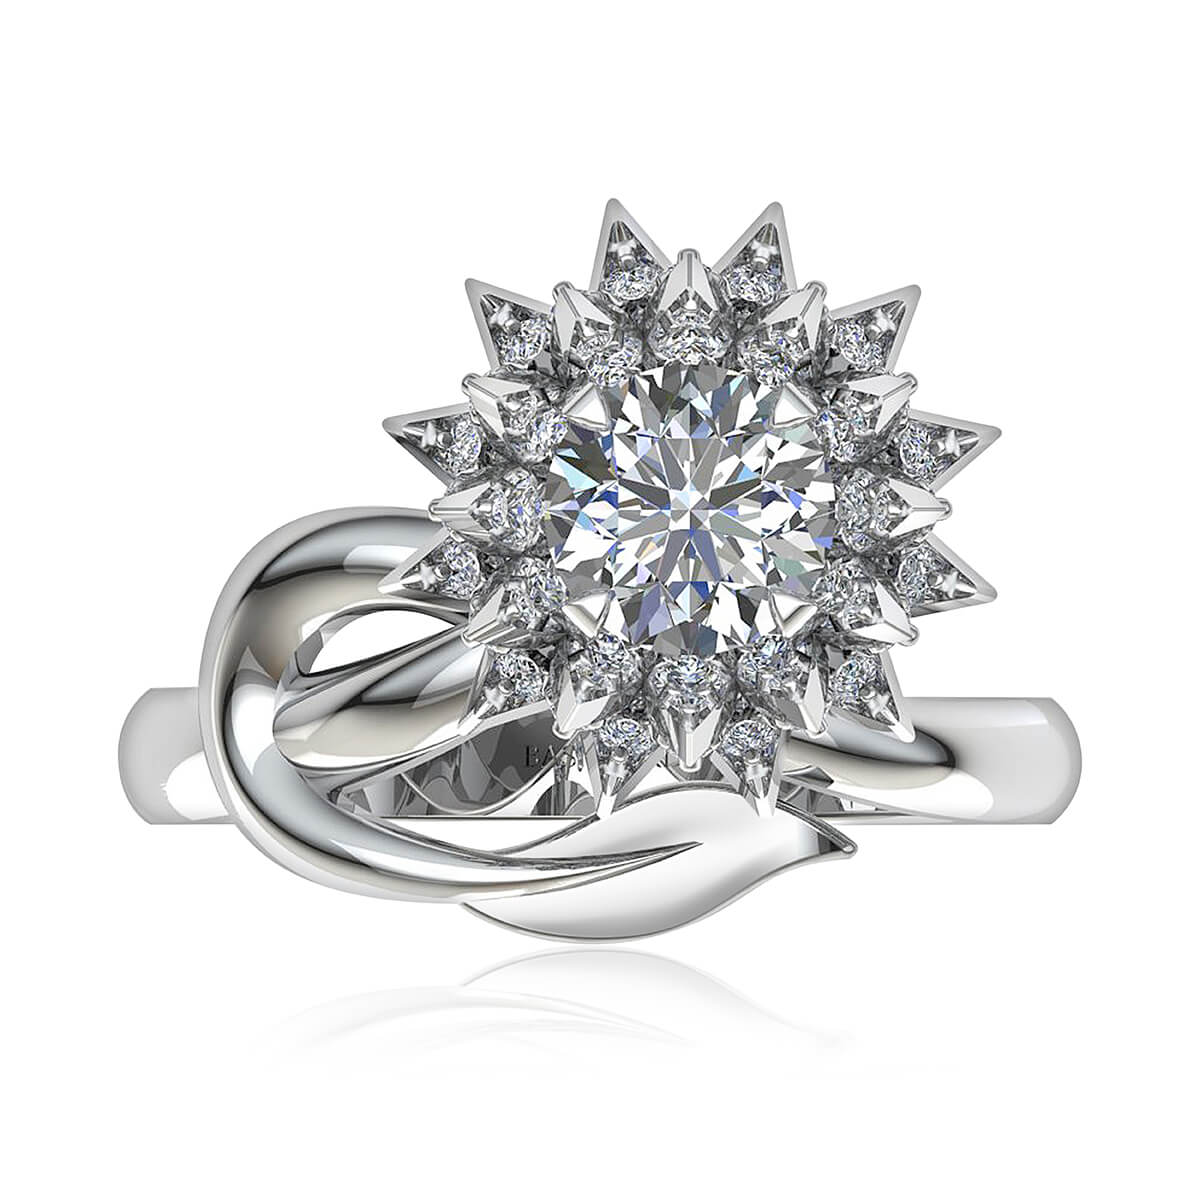 The Dahlia Diamond Ring